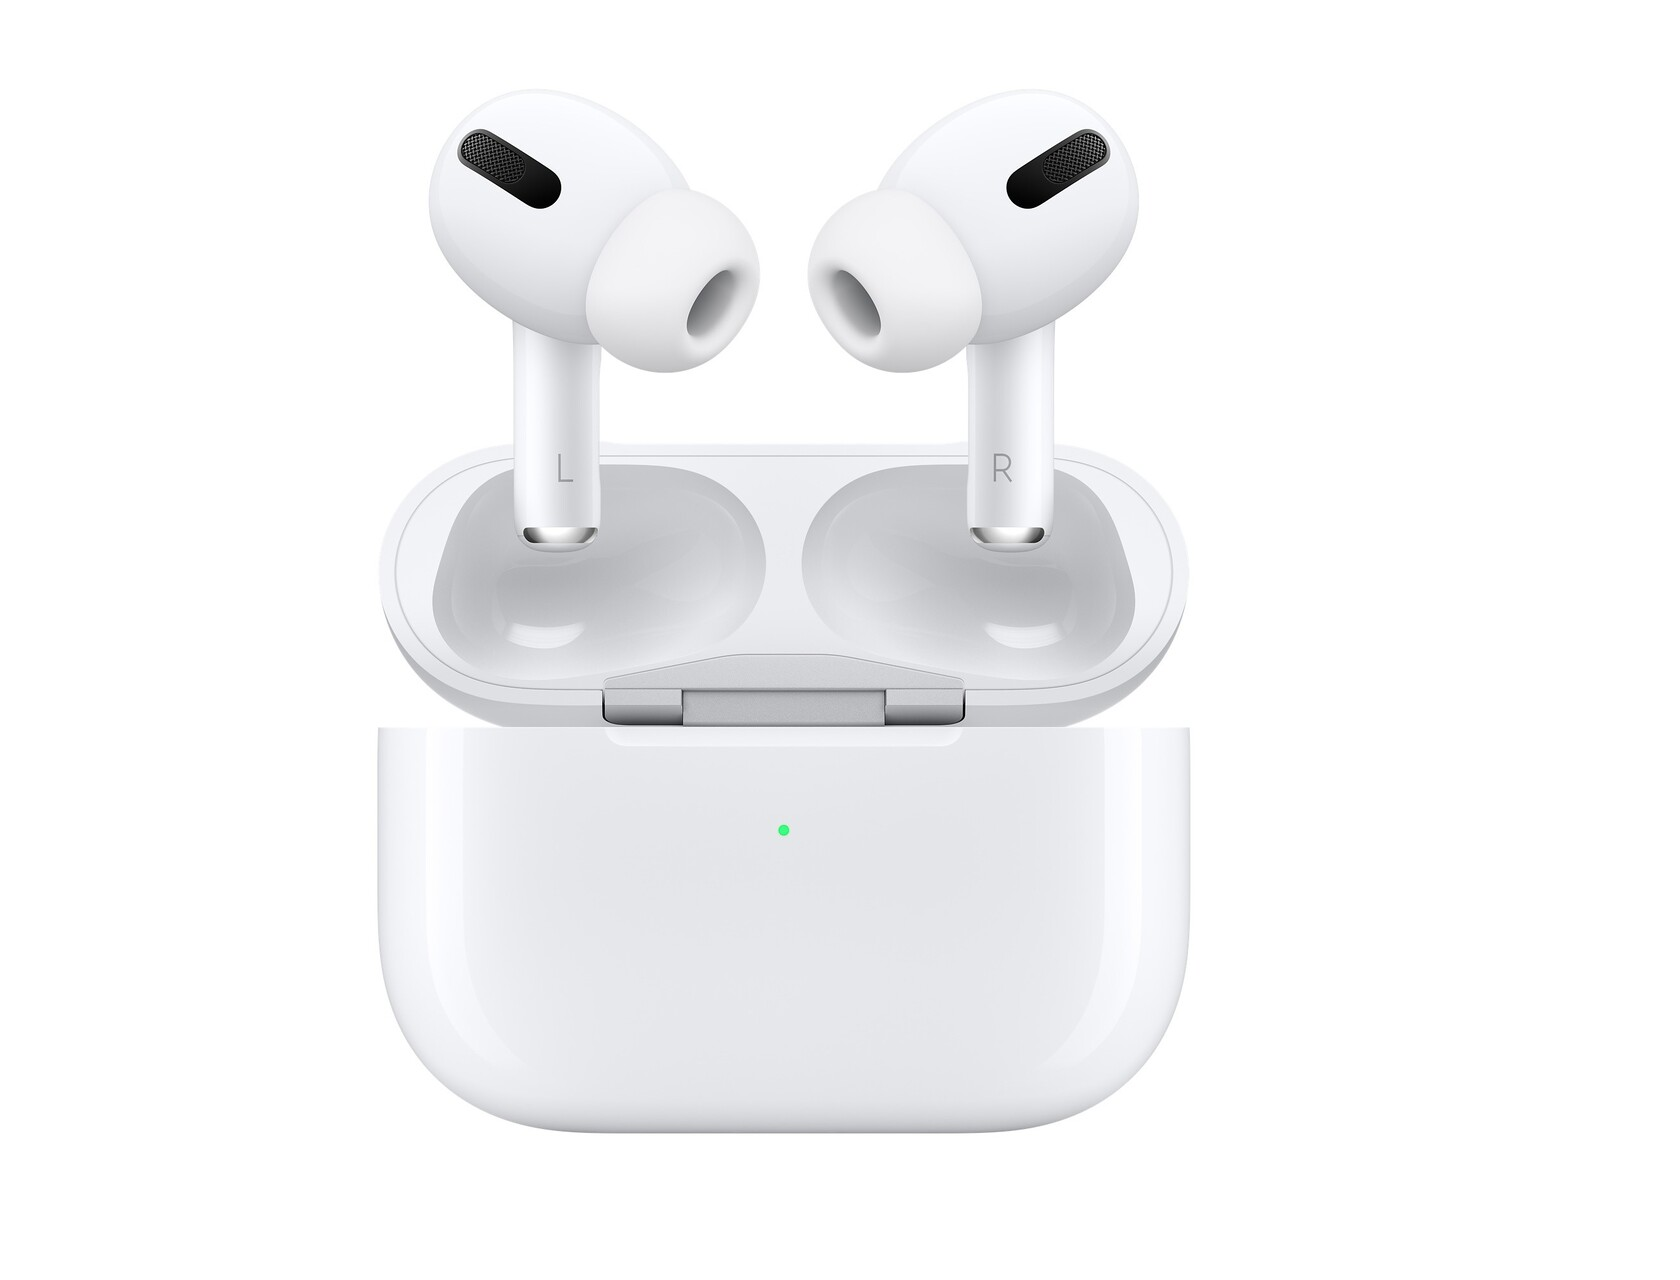 The next AirPods Pro might ditch the classic stemmed design: new leak